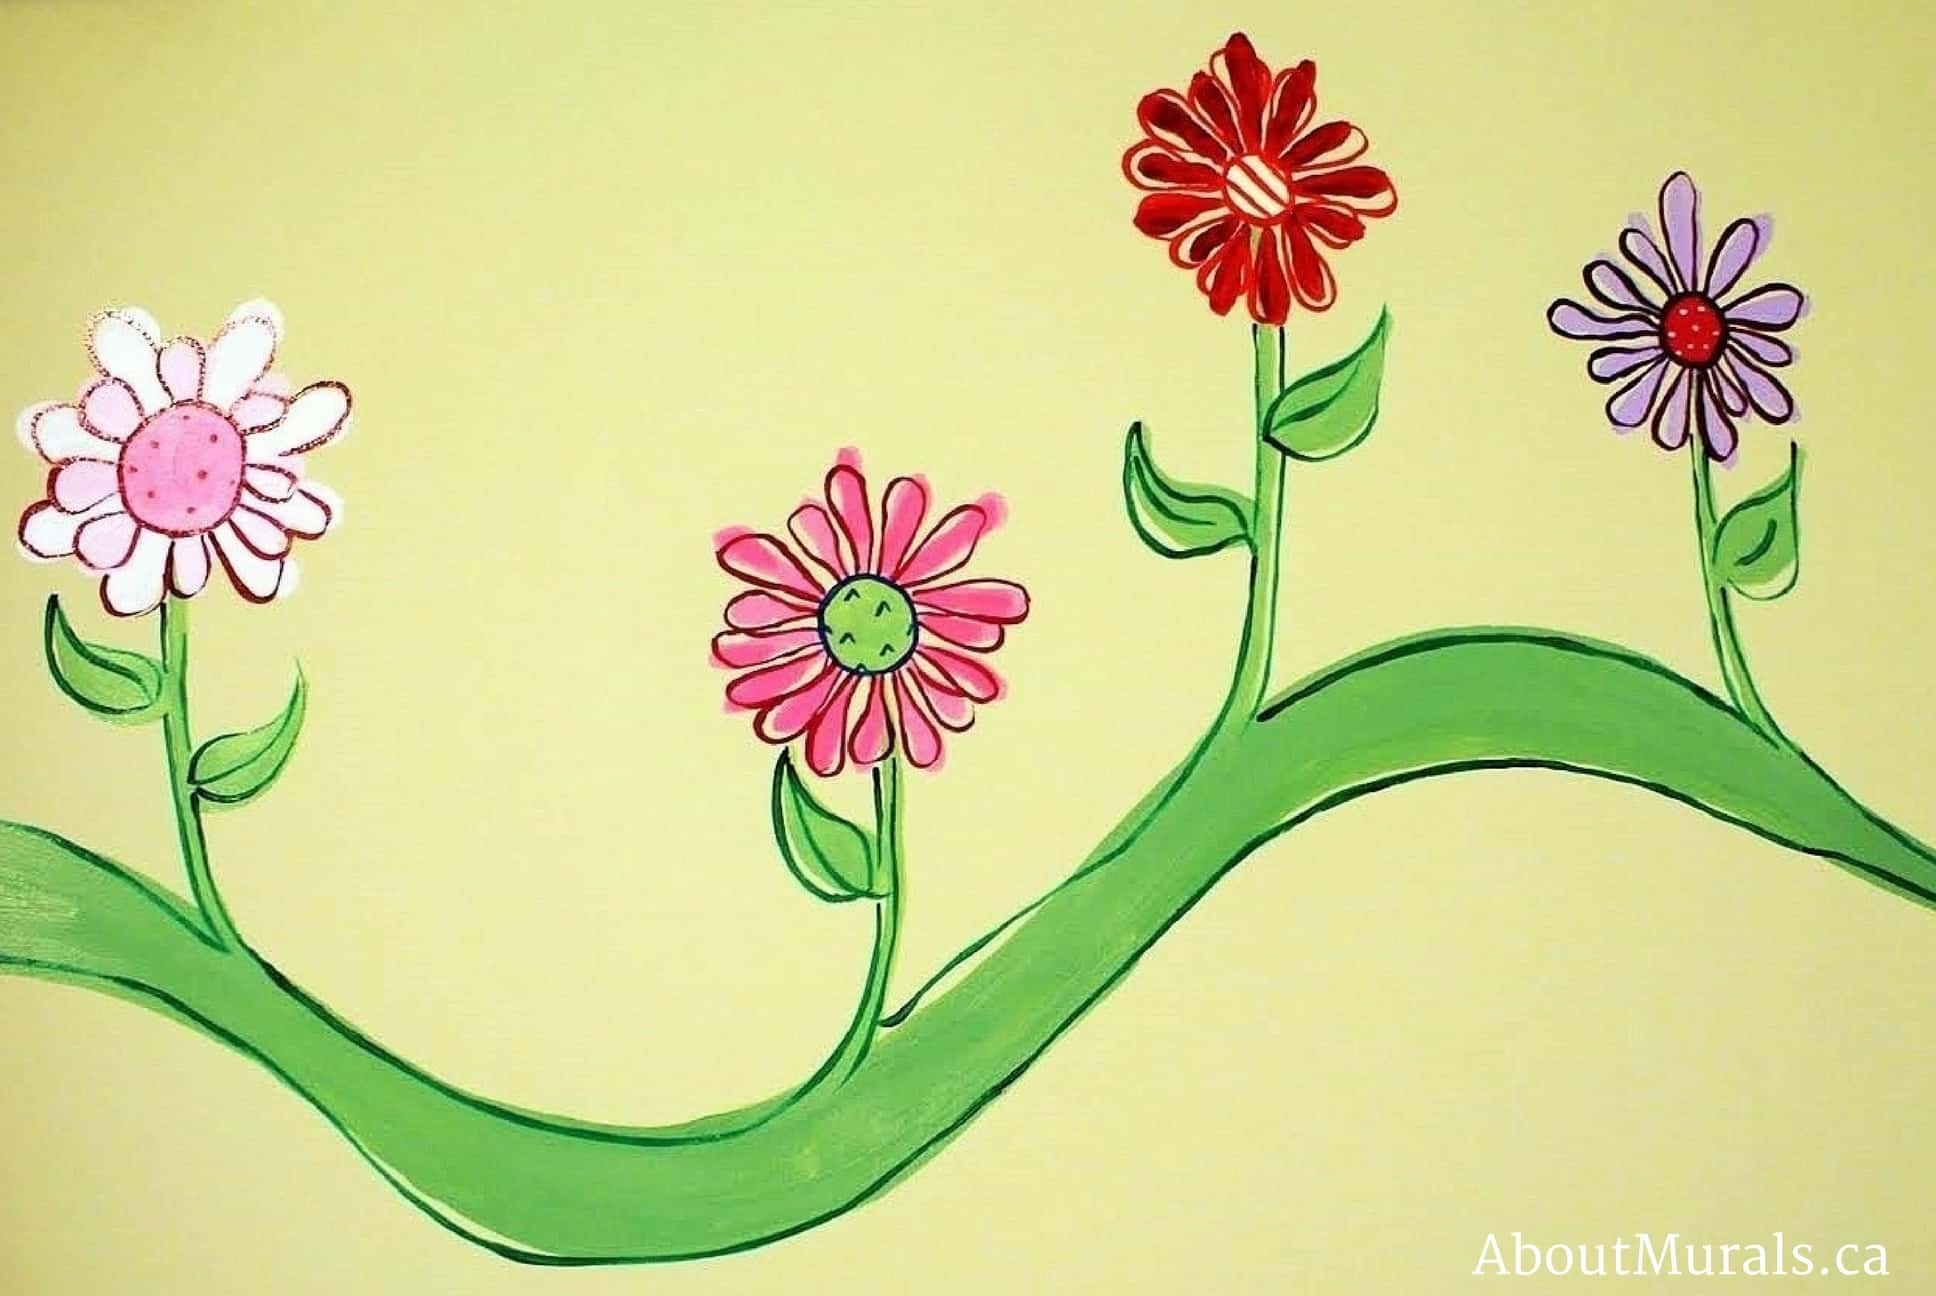 A kids wall mural featuring pretty flowers on a vine